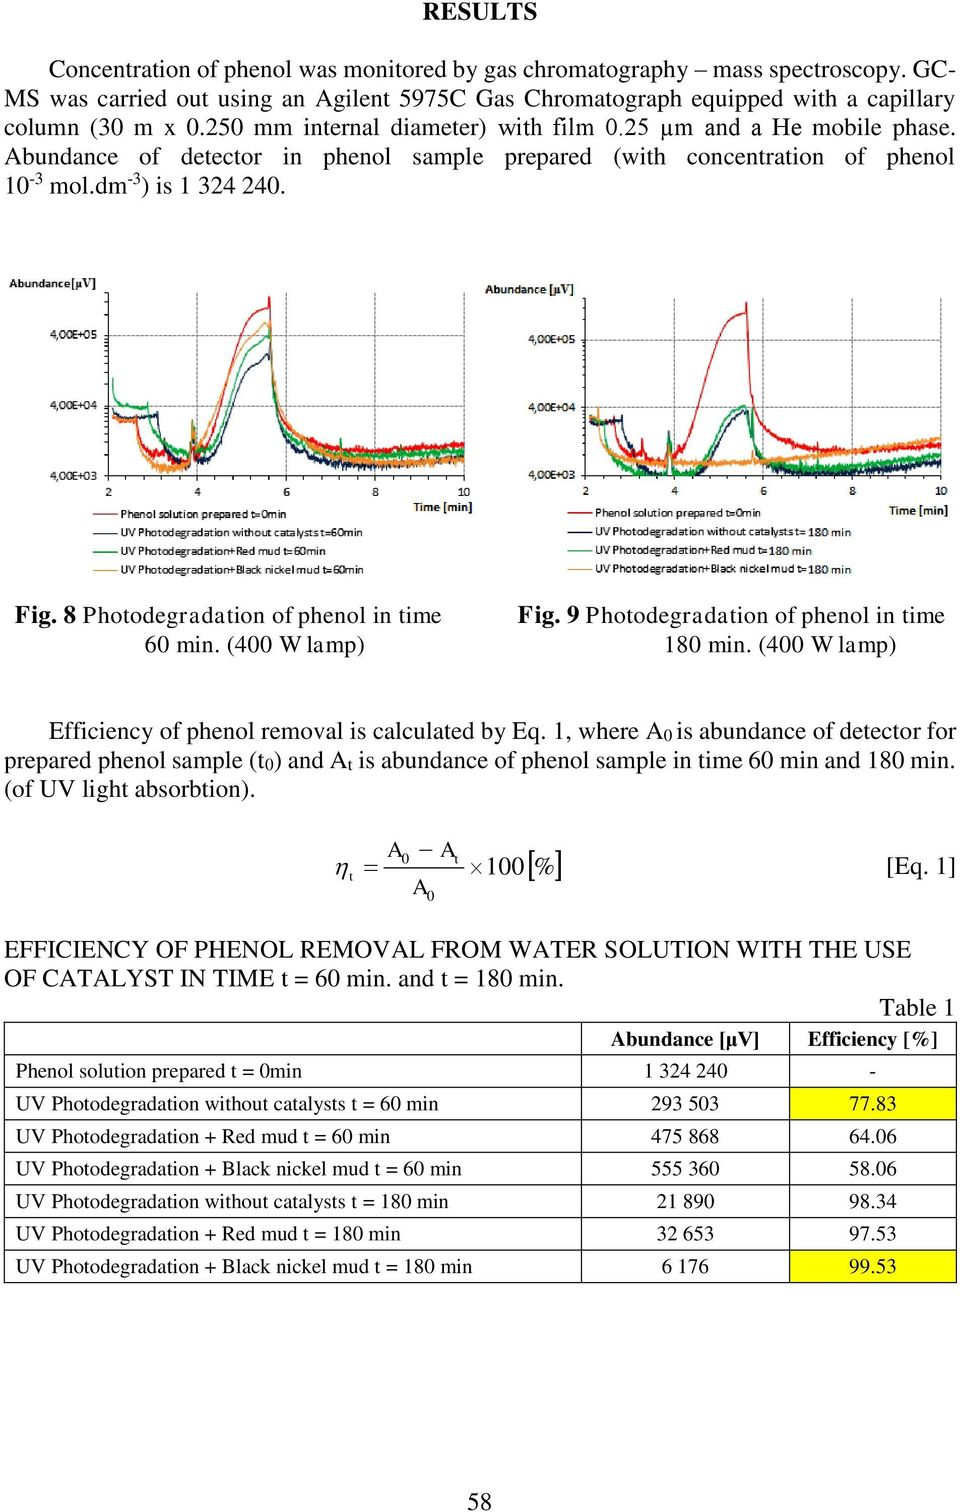 8 Photodegradation of phenol in time Fig. 9 Photodegradation of phenol in time 60 min. (400 W lamp) 180 min. (400 W lamp) Efficiency of phenol removal is calculated by Eq.